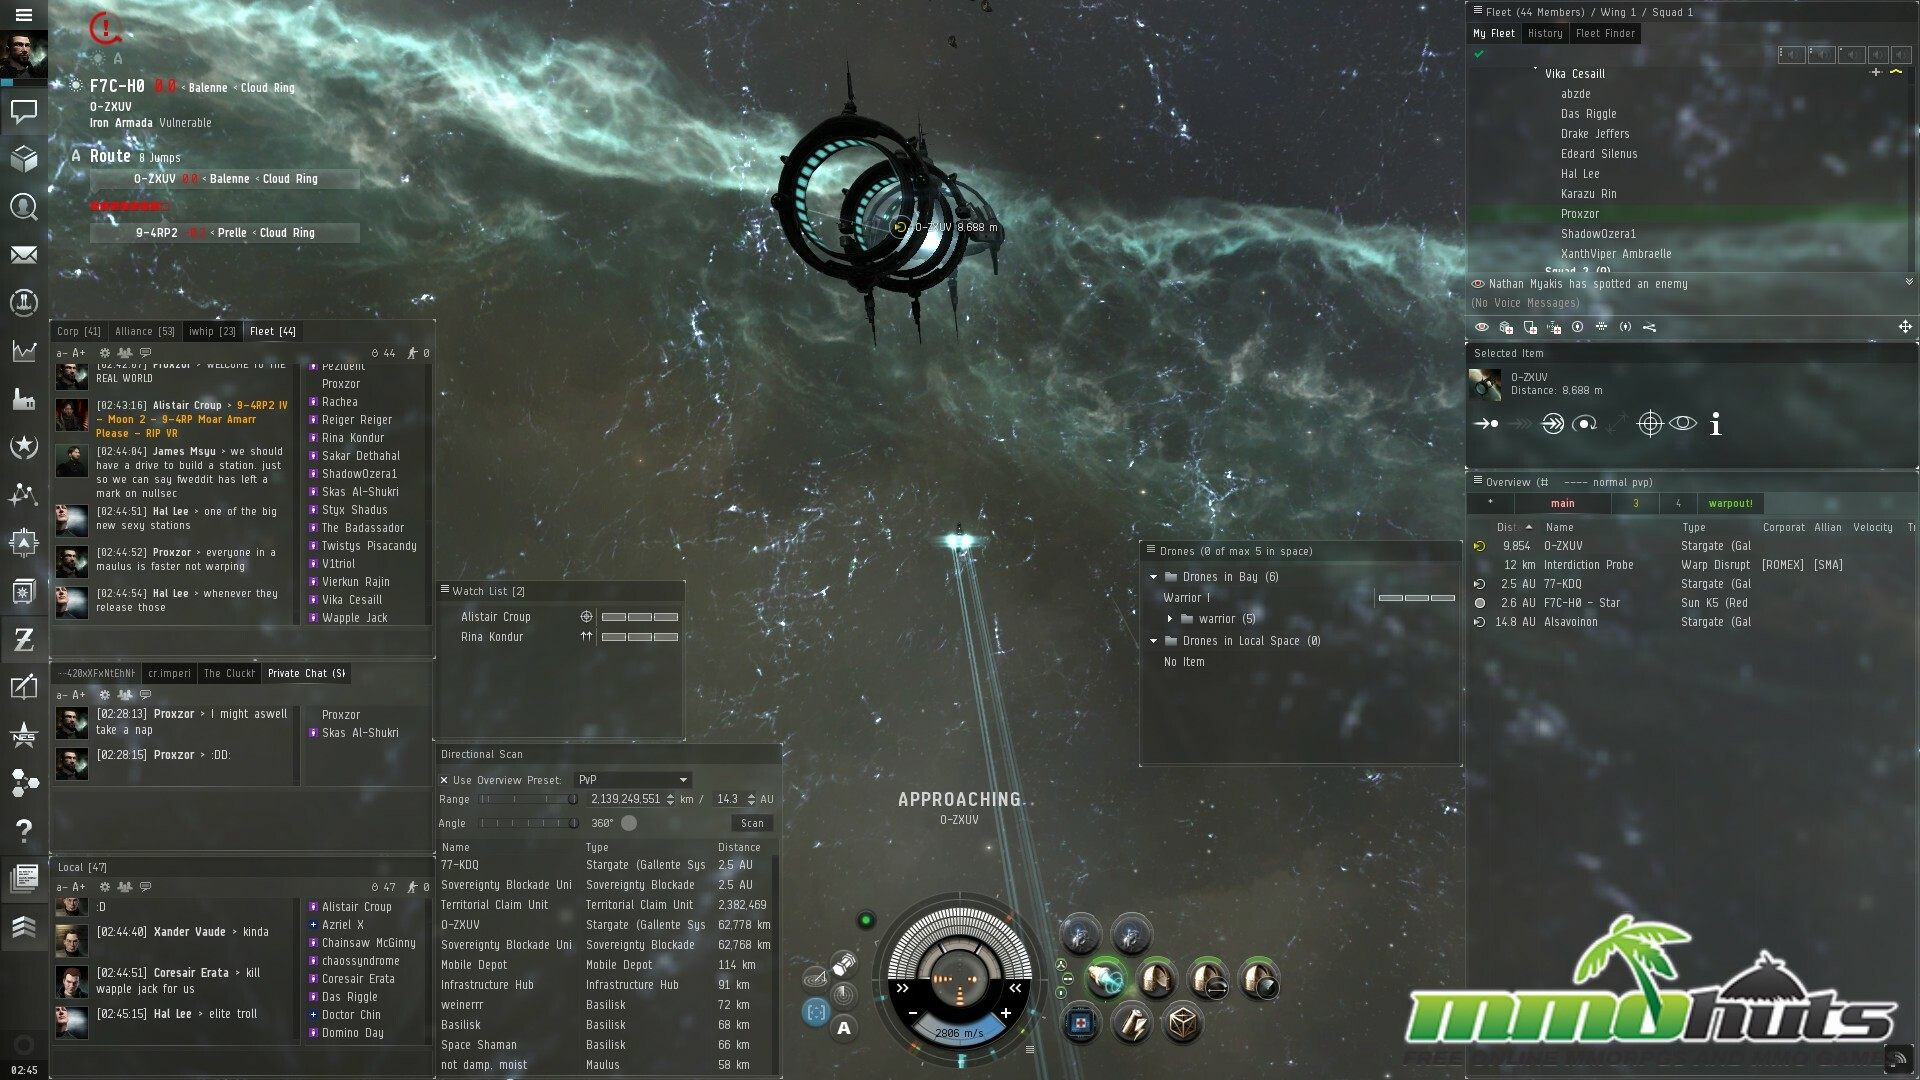 eve online gameplay 2017 - photo #9